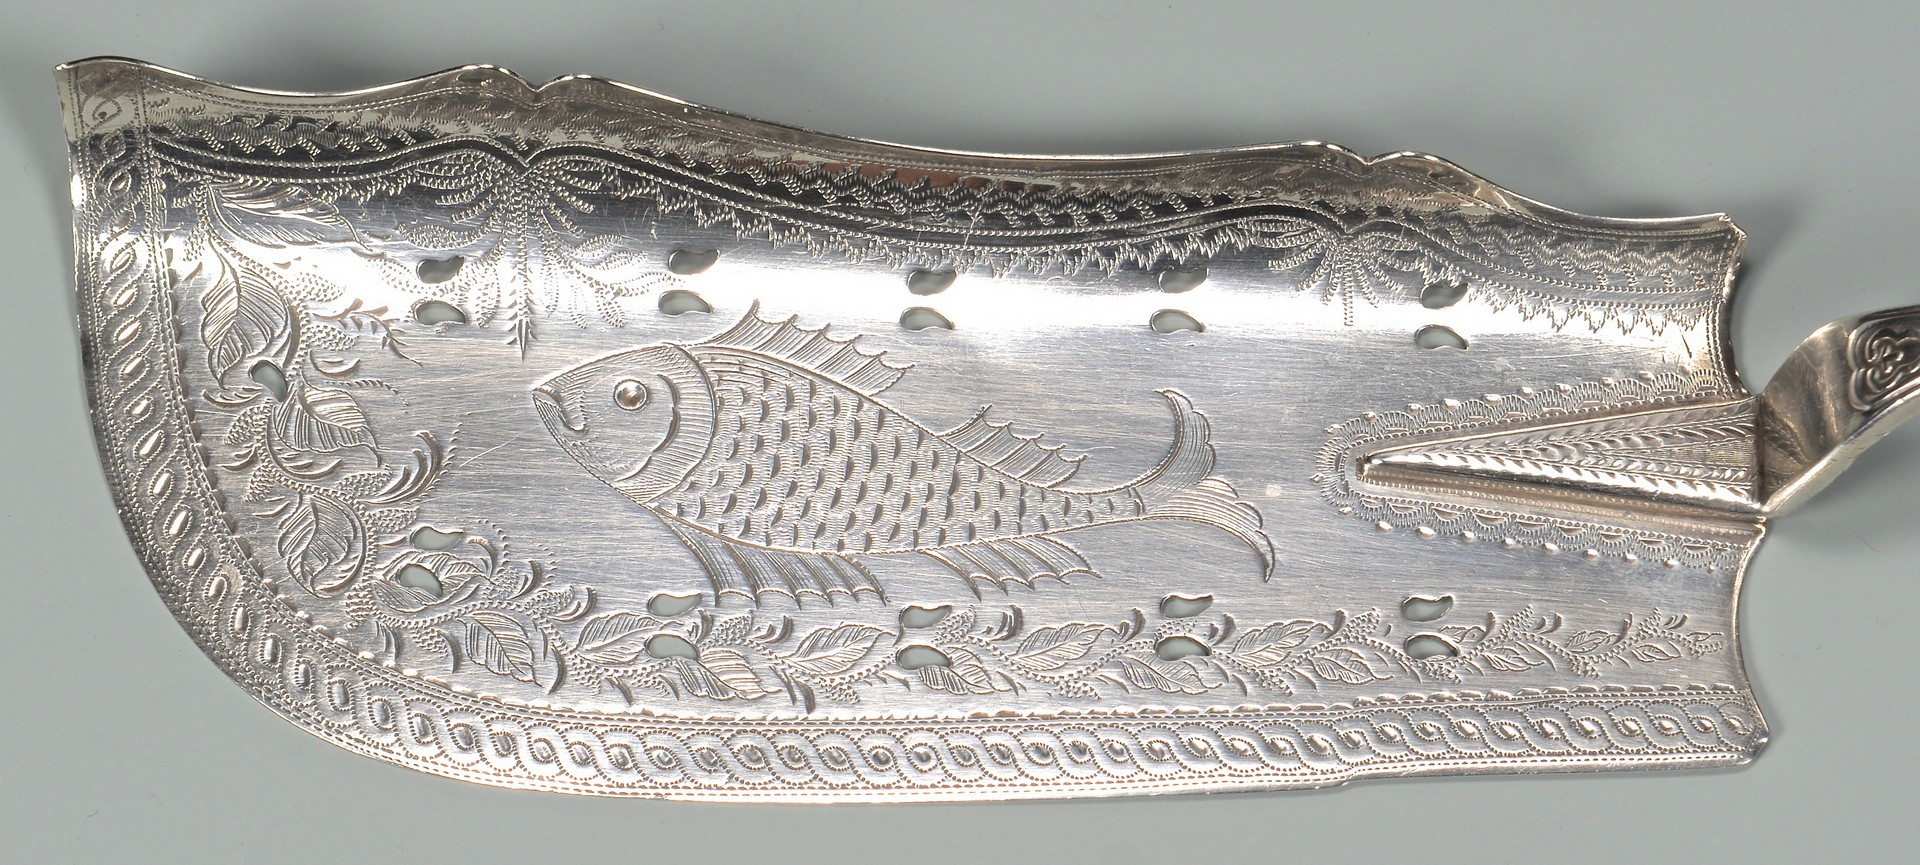 Lot 88: Hyde & Goodrich Coin Fish Slice, New Orleans